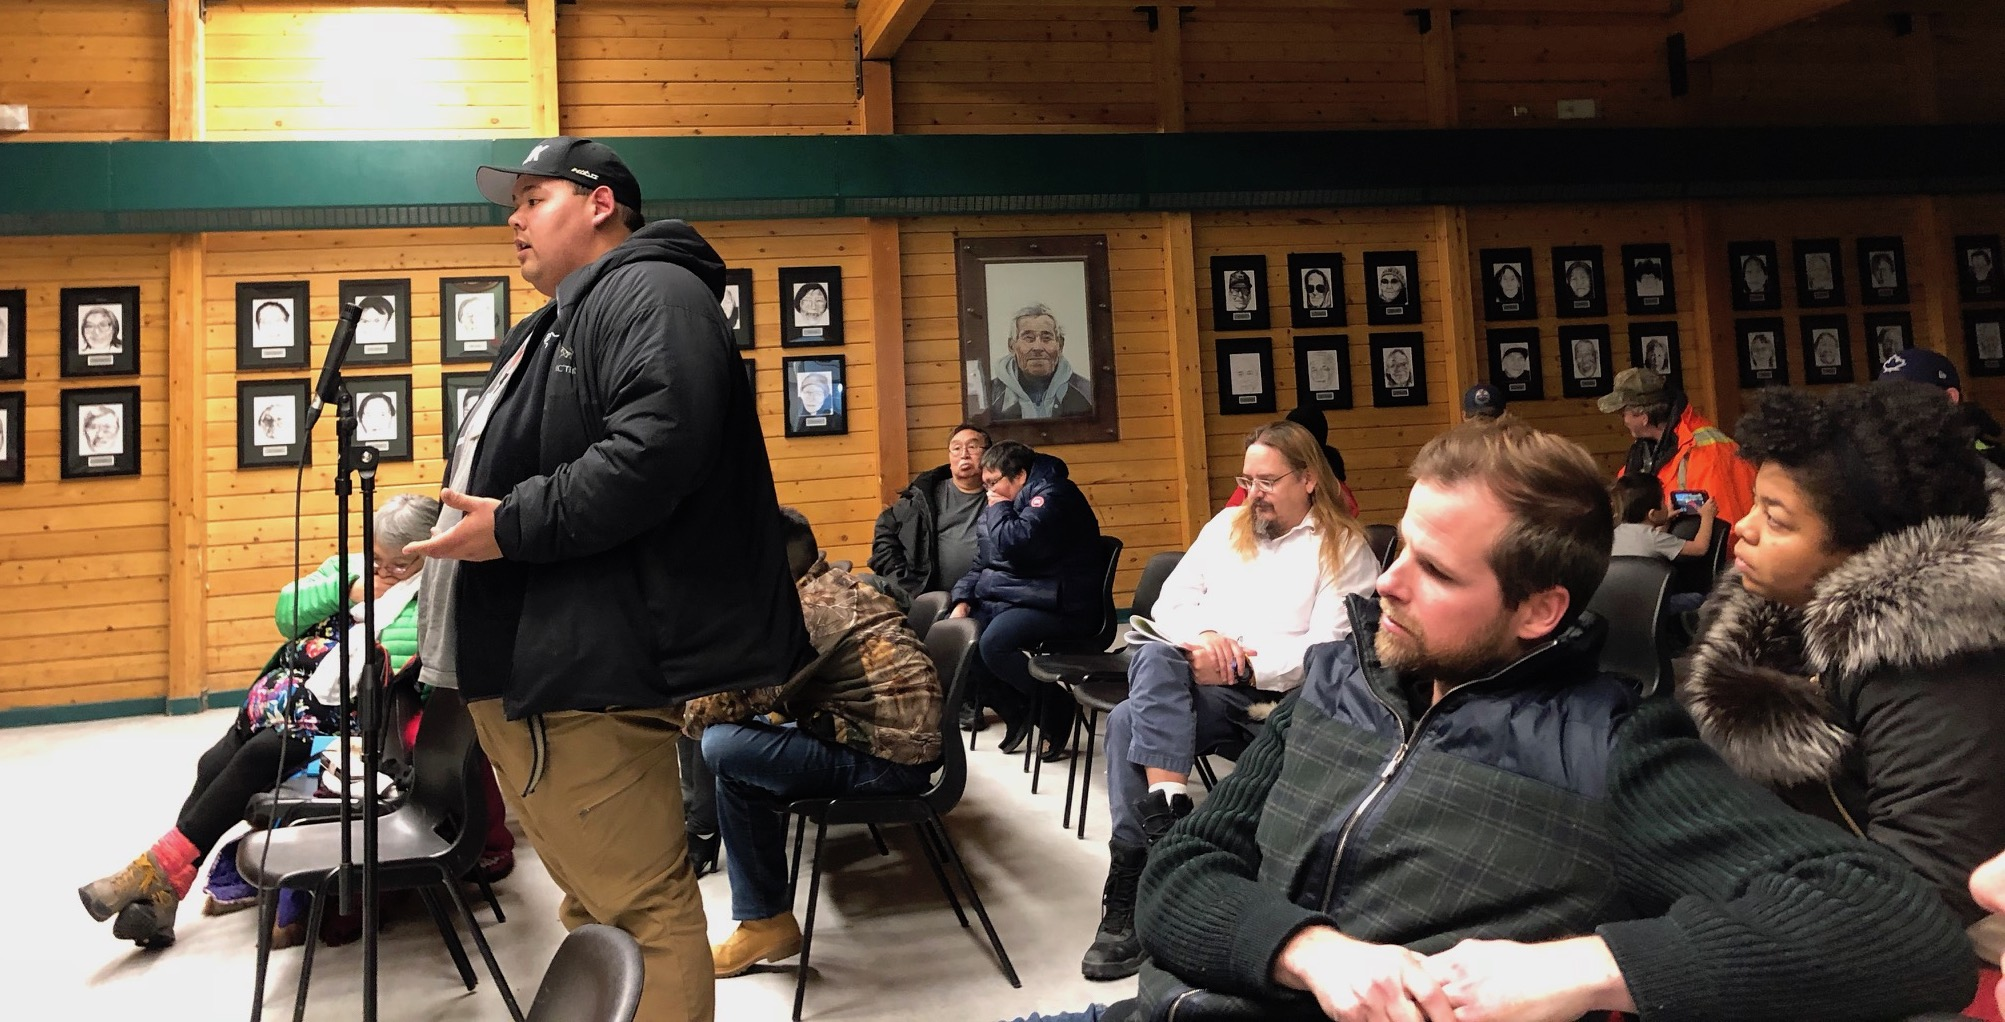 Compensation should be fair for Marine Transportation Services customers who won't see their trucks due to the company's barge cancellation, says Angut Pedersen of Cambridge Bay, who stood up on Oct. 15 in a public meeting for MTS customers in the Luke Novoligak Community Hall. (PHOTO BY JANE GEORGE)